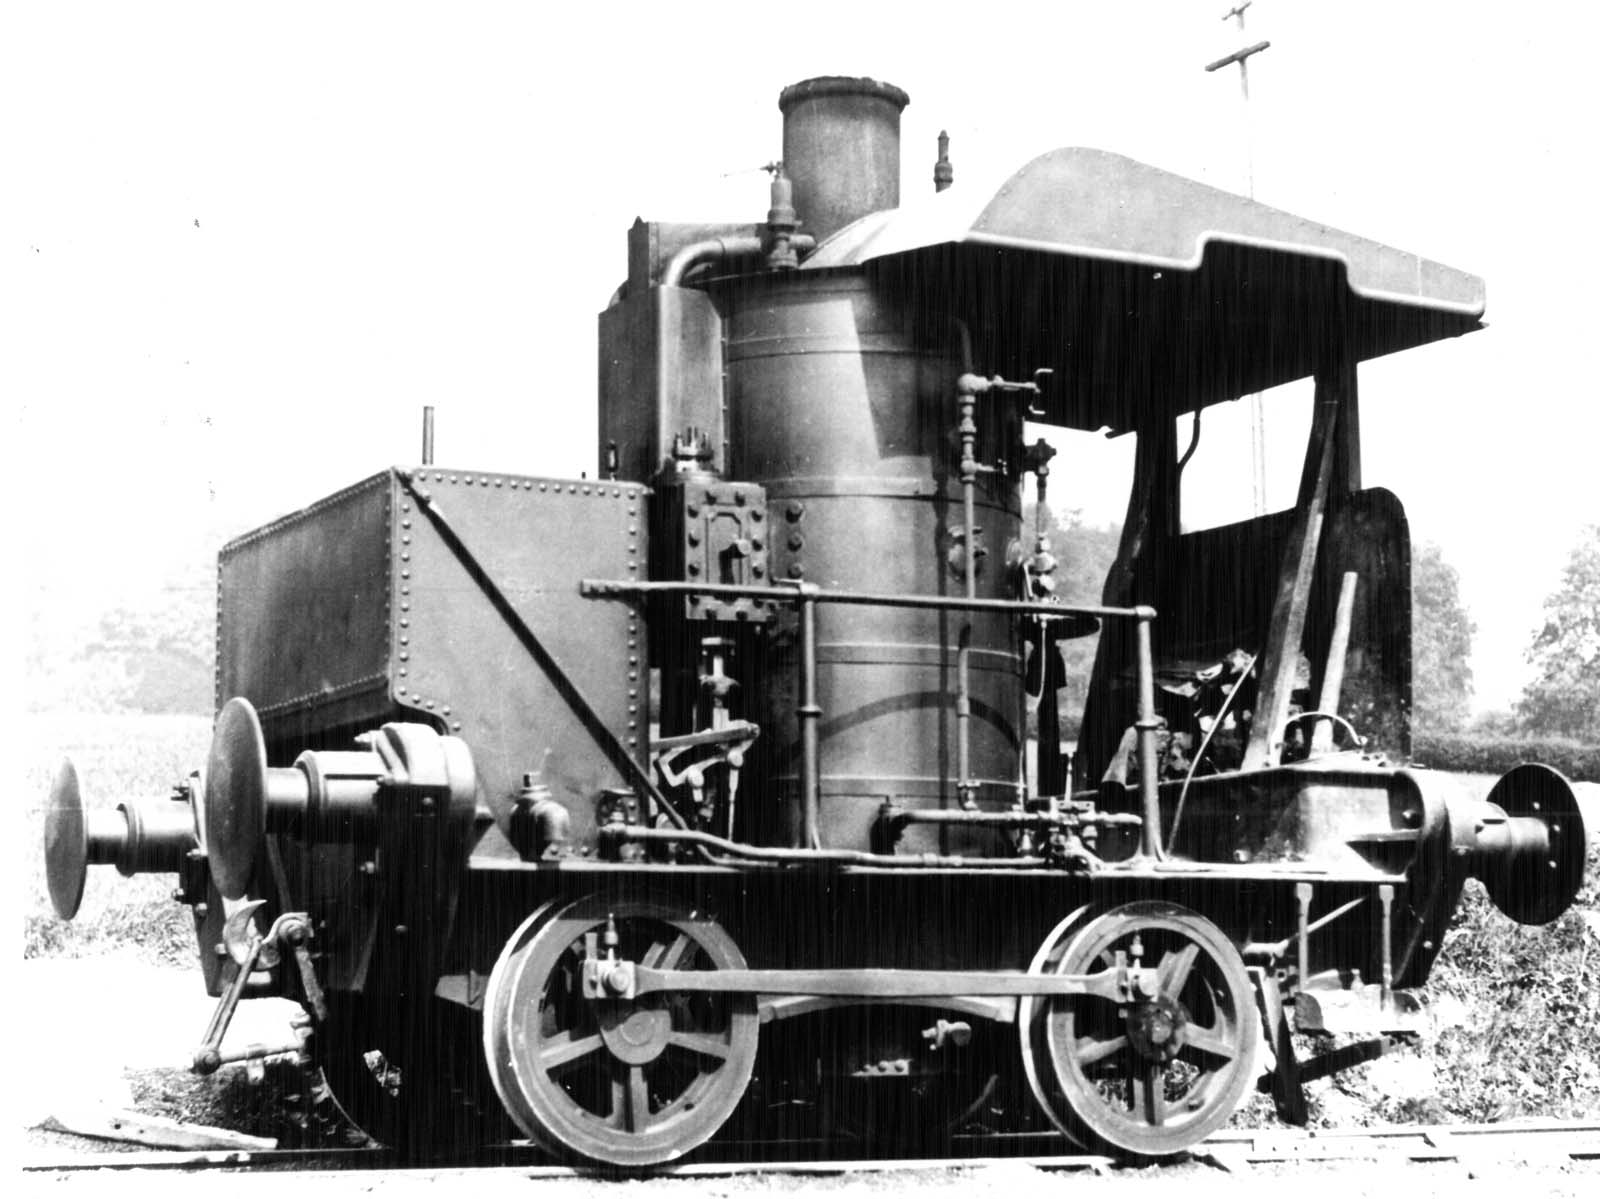 a black and white photo of a steam locomotive with large upright cylinder